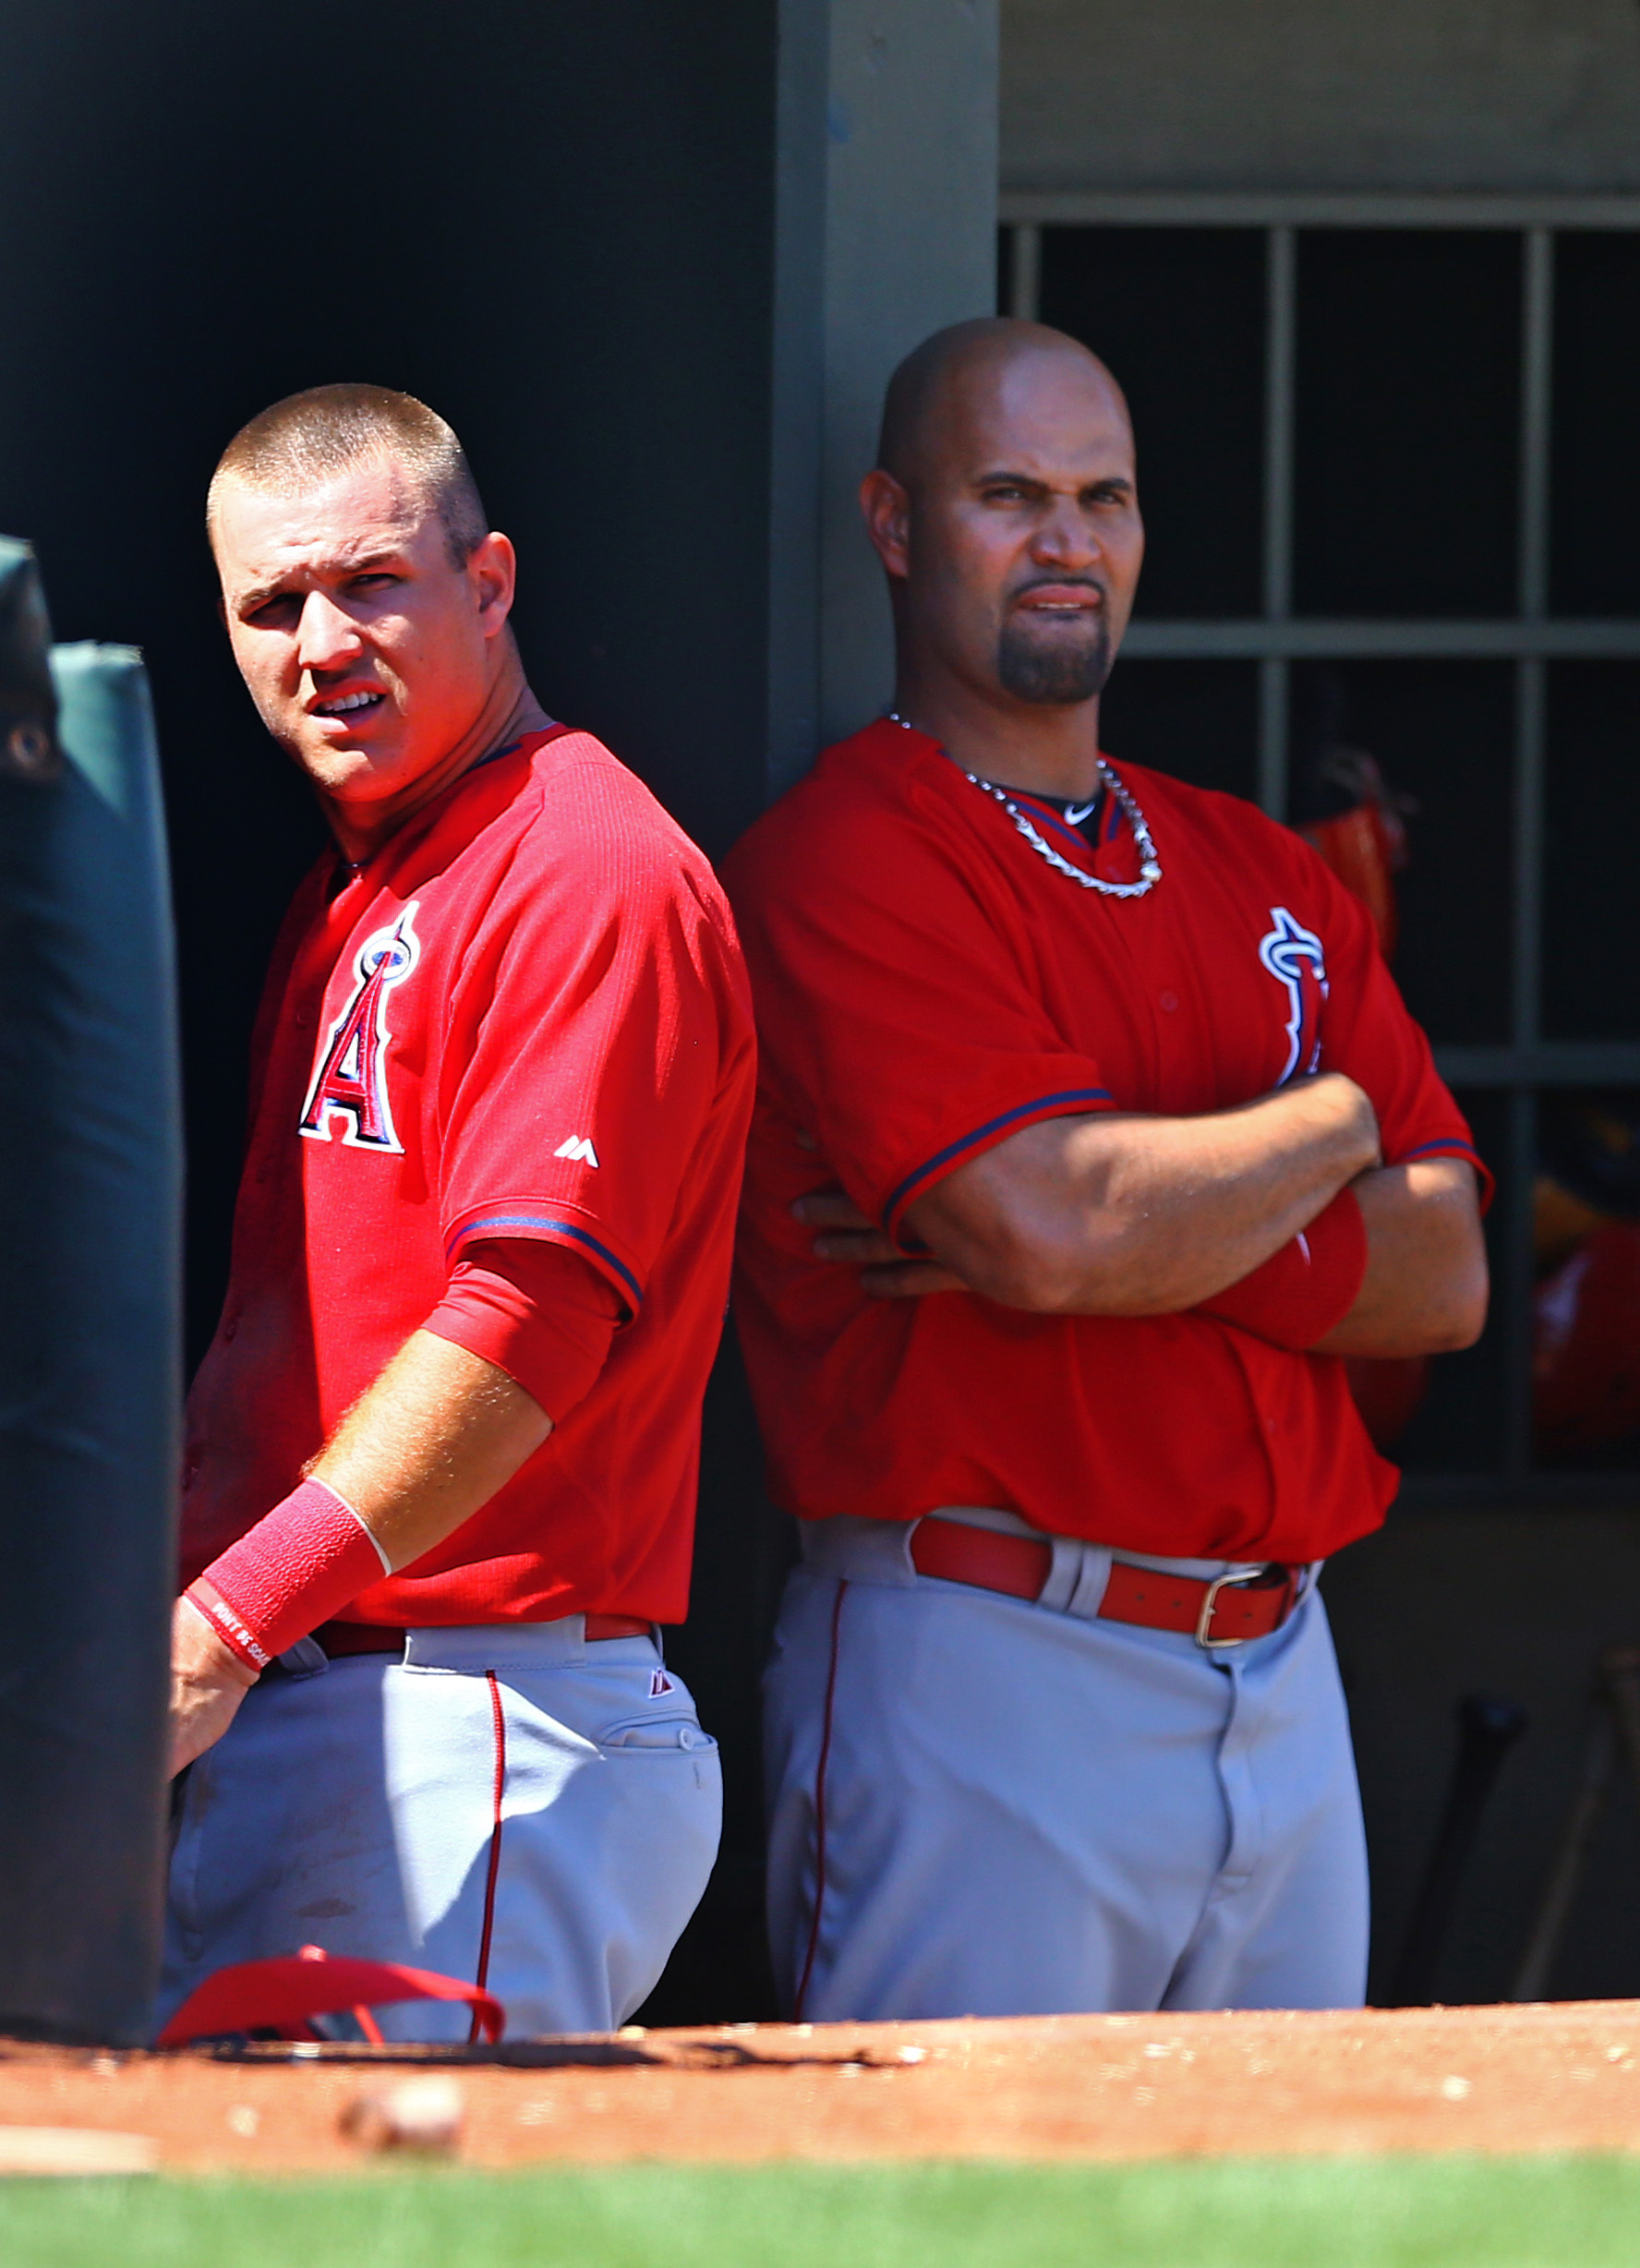 Trout and Pujols contemplate when their org will turn on them